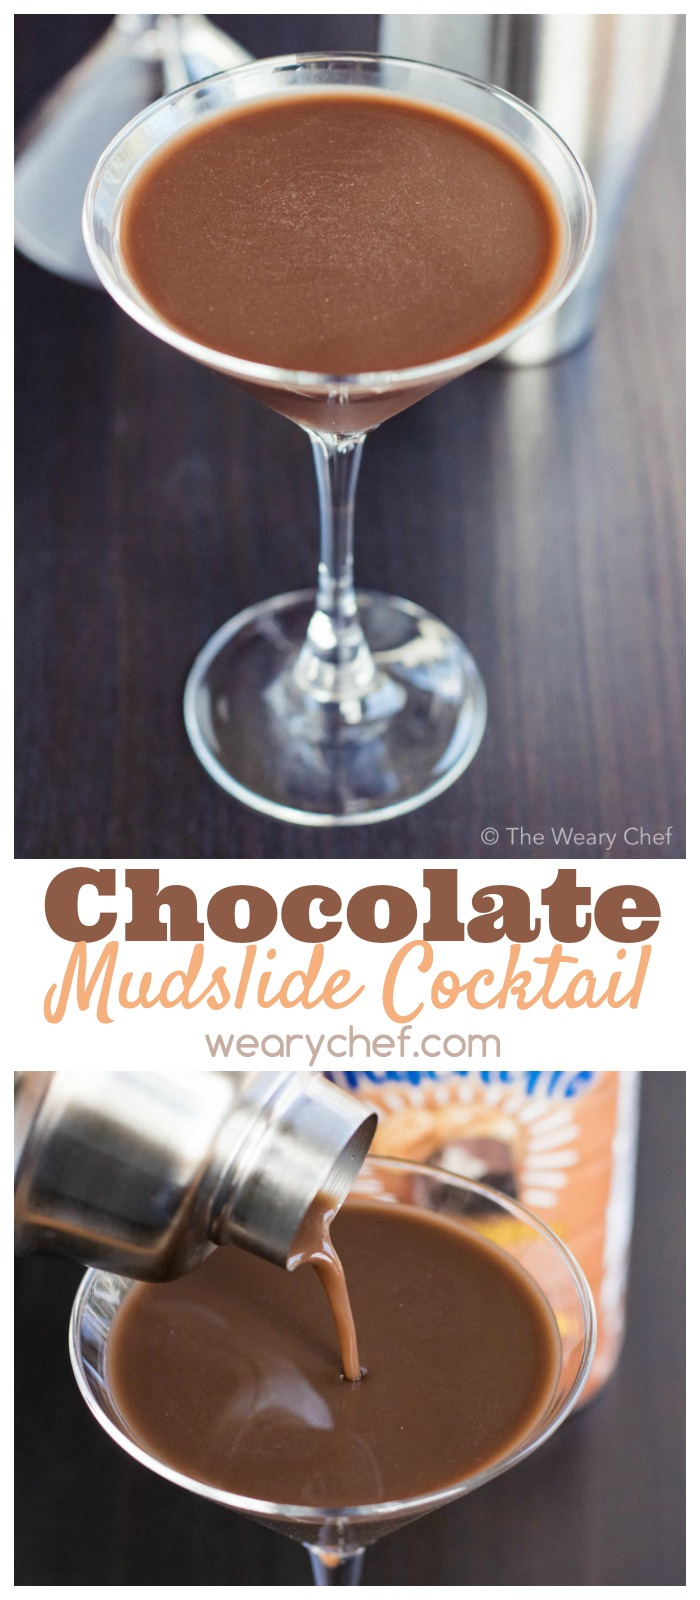 You'll love this easy, dairy free chocolate mudslide cocktail recipe!